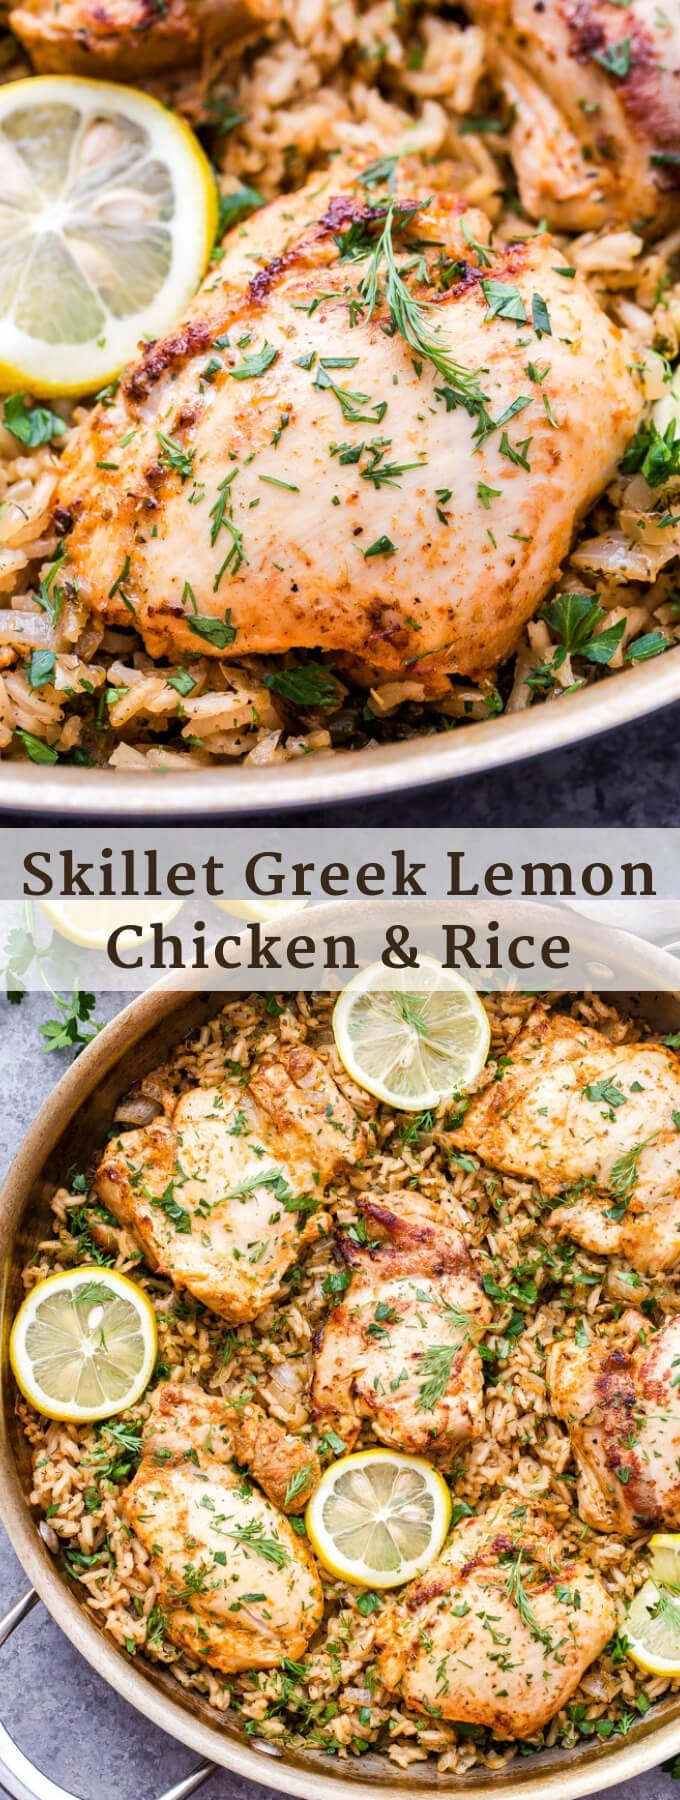 Skillet Greek Lemon Chicken and Rice couldn't be easier to make and is ideal for a weeknight dinner! Hearty chicken thighs are marinated in Greek spices, garlic and lemon juice then nestled on top of herbed rice and baked to perfection! #chicken #chickenthighs #Greek #lemon #skillet #onepan #easyrecipe #glutenfree #rice #healthyrecipe